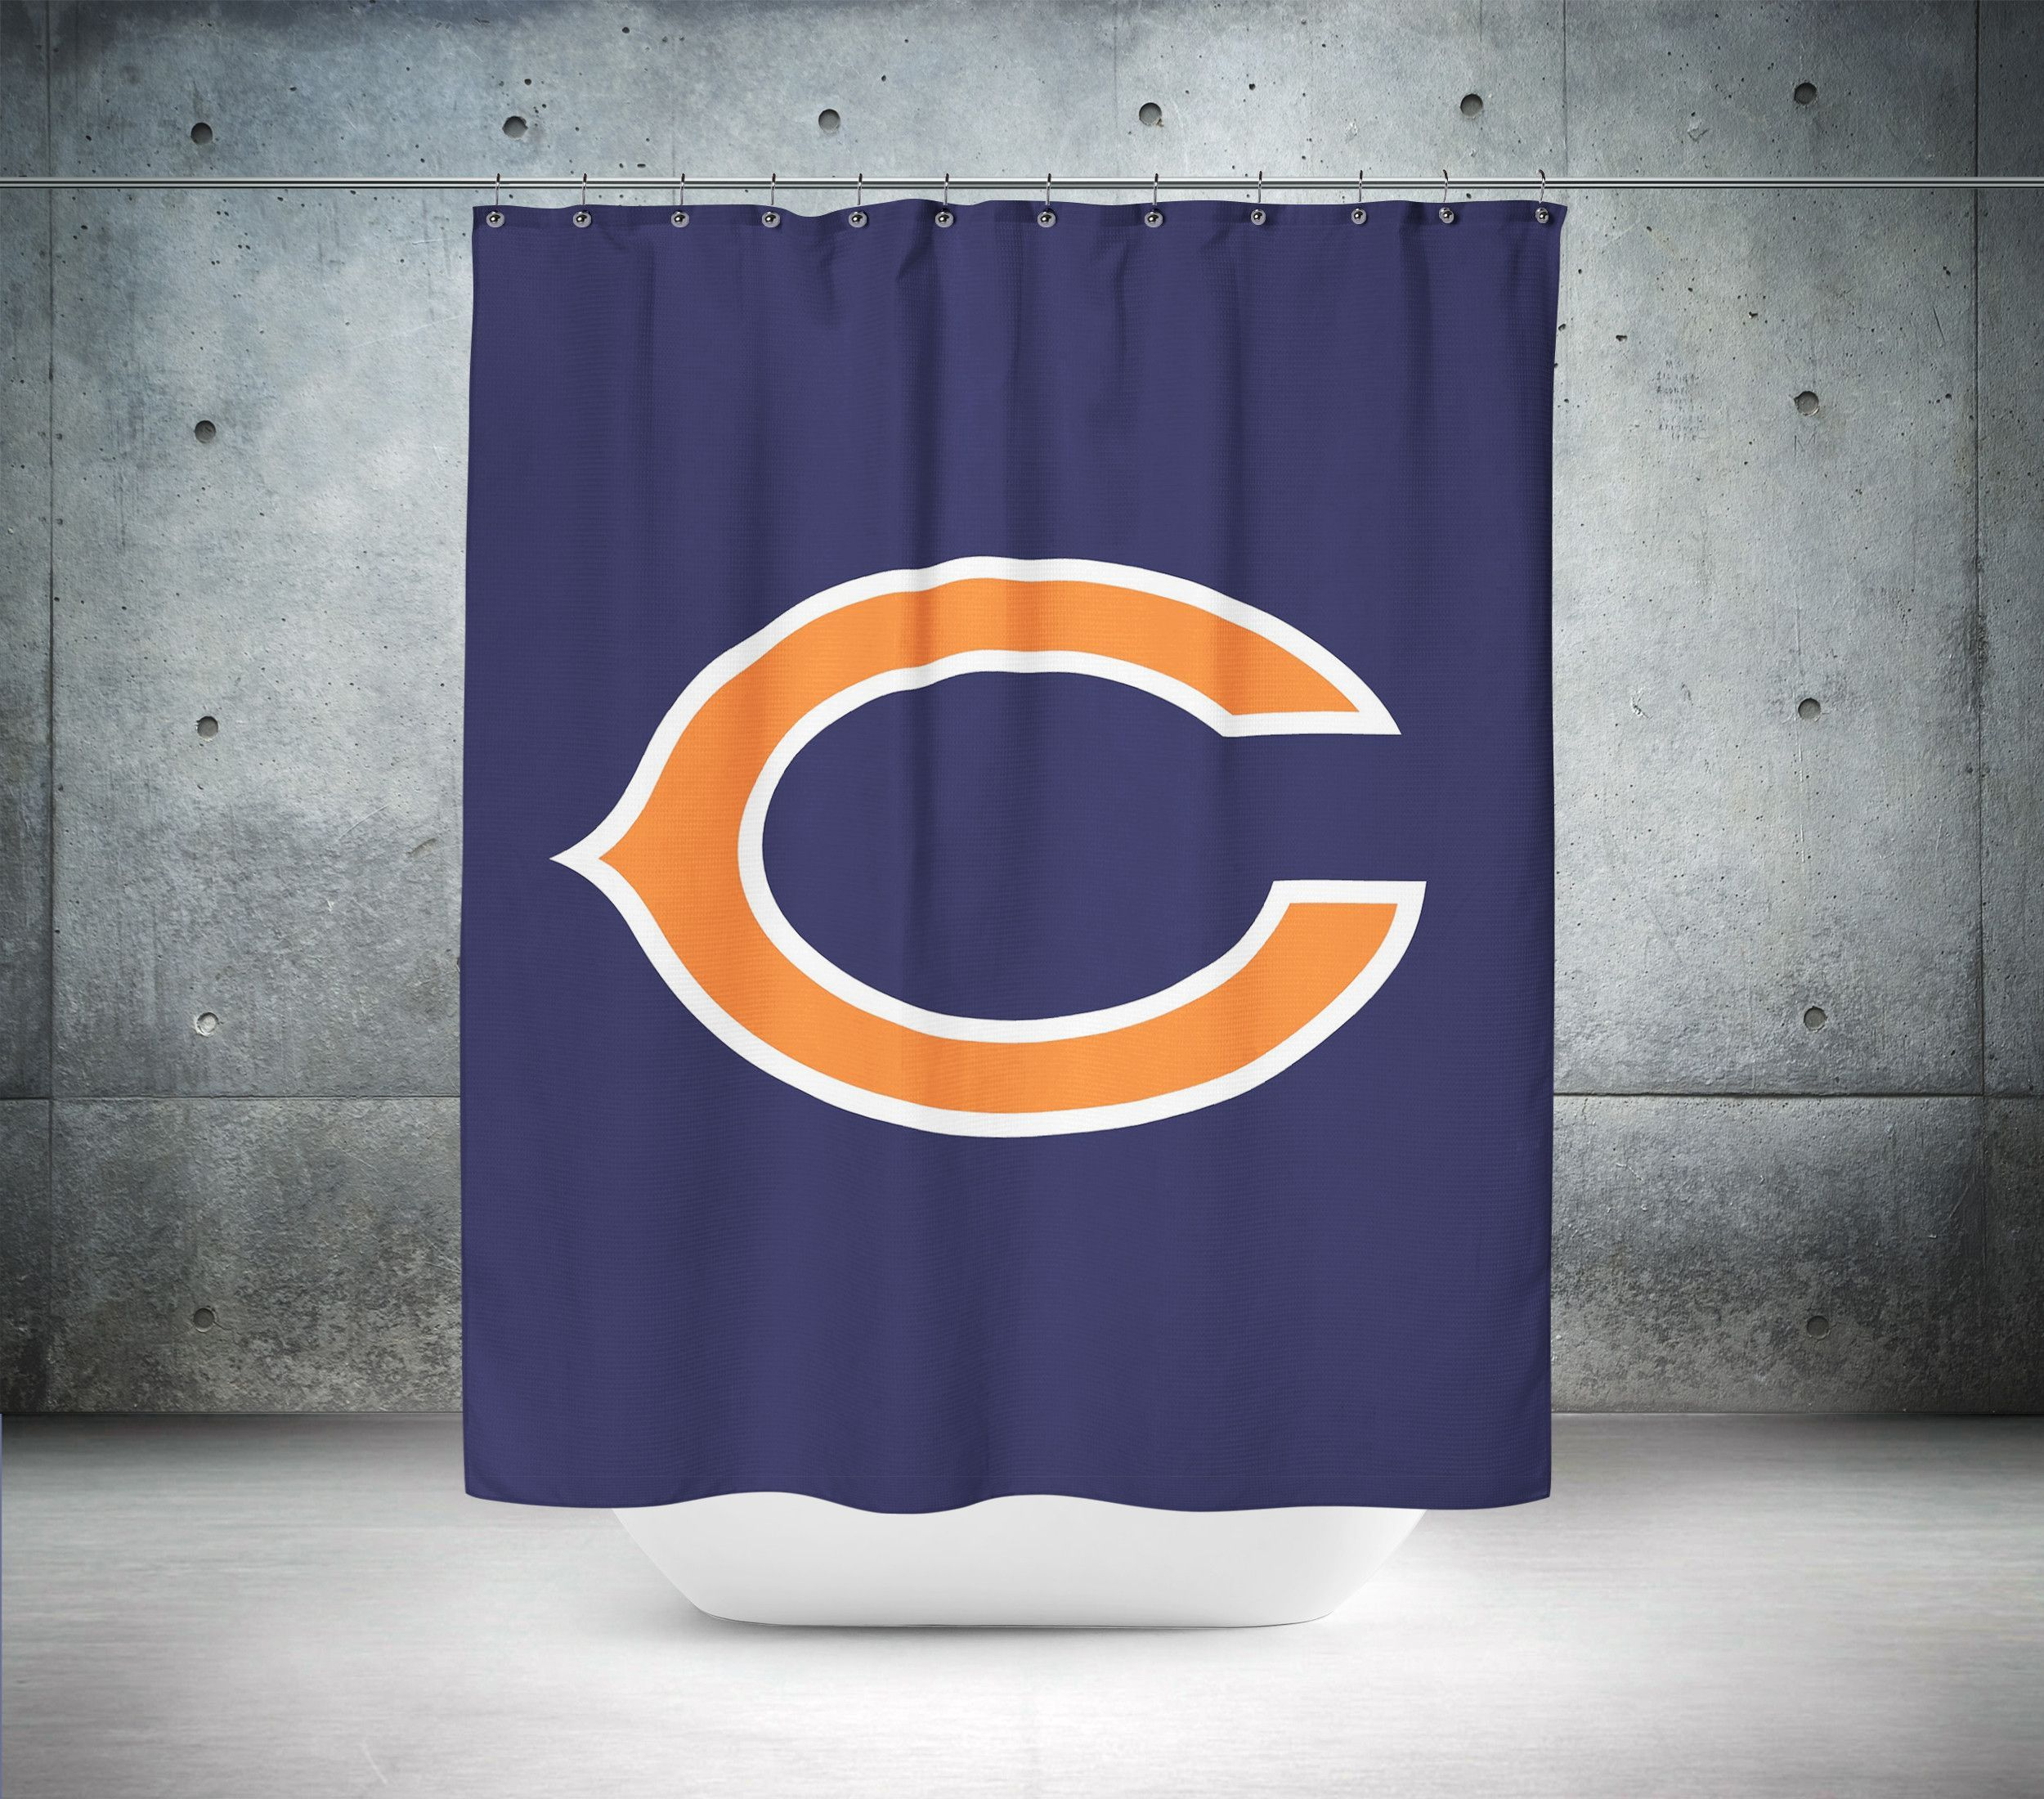 Chicago Bears Nfl Shower Curtain Nfl Shower Curtains Curtains